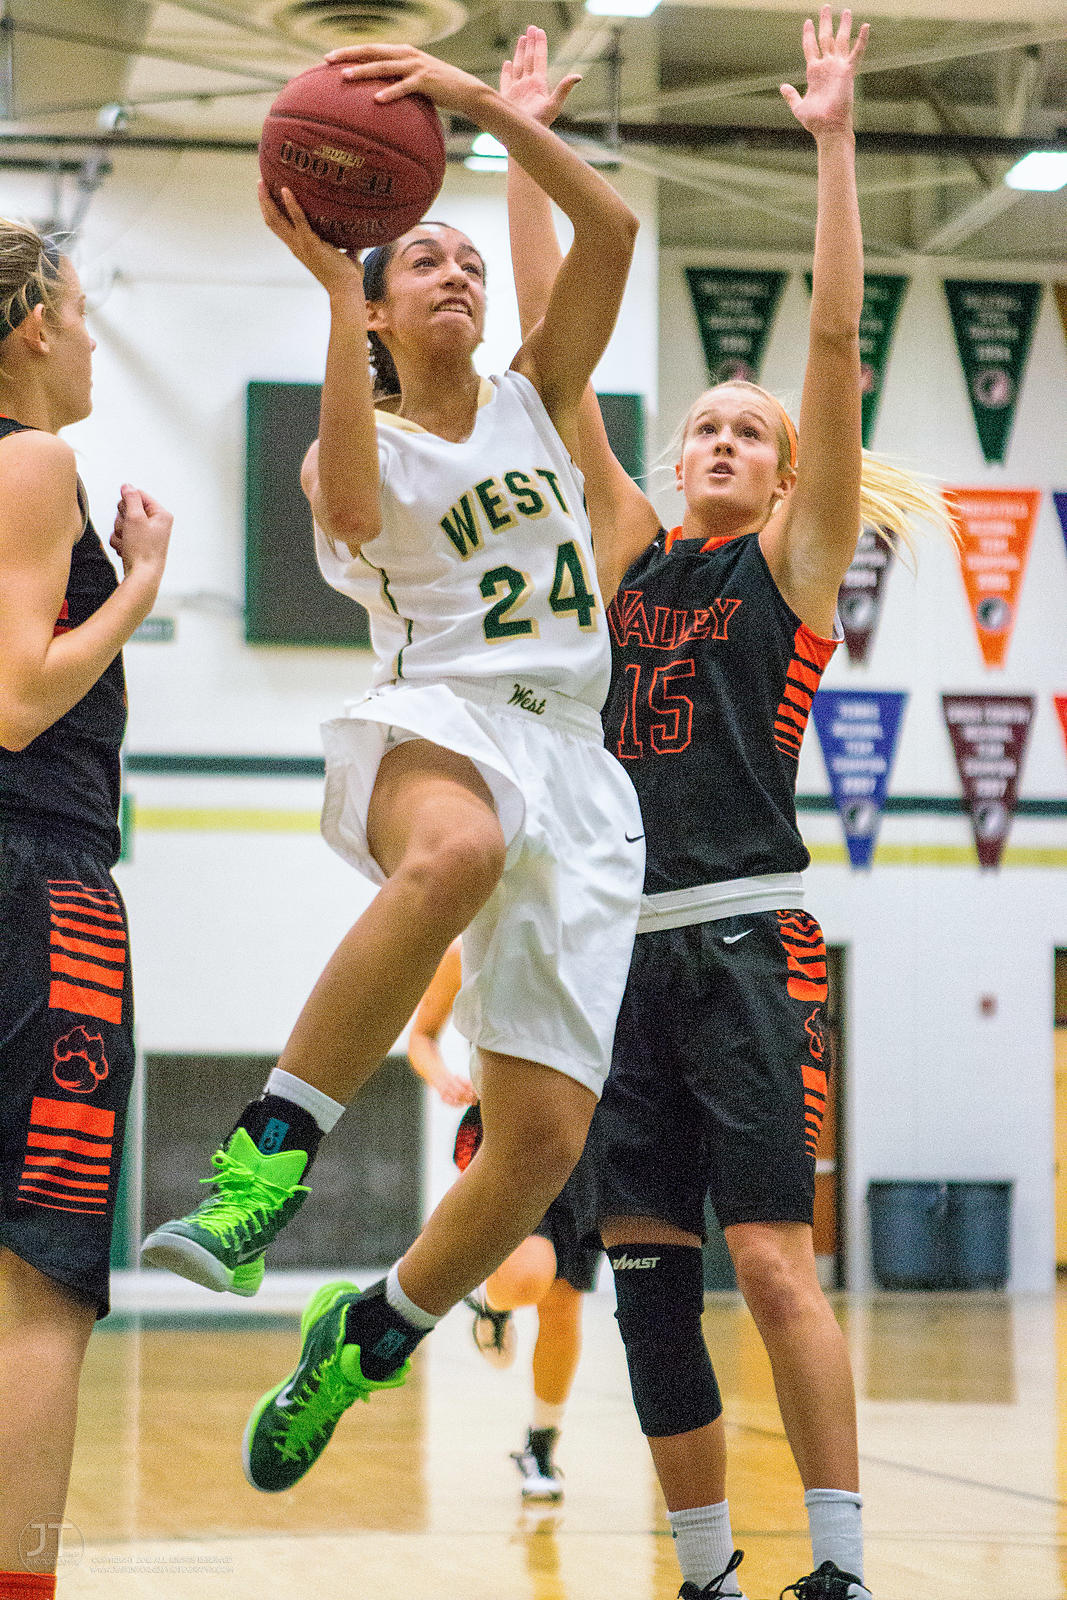 Girl's Prep Basketball, Iowa City West vs West Des Moines Valley, January 24, 2015 photos